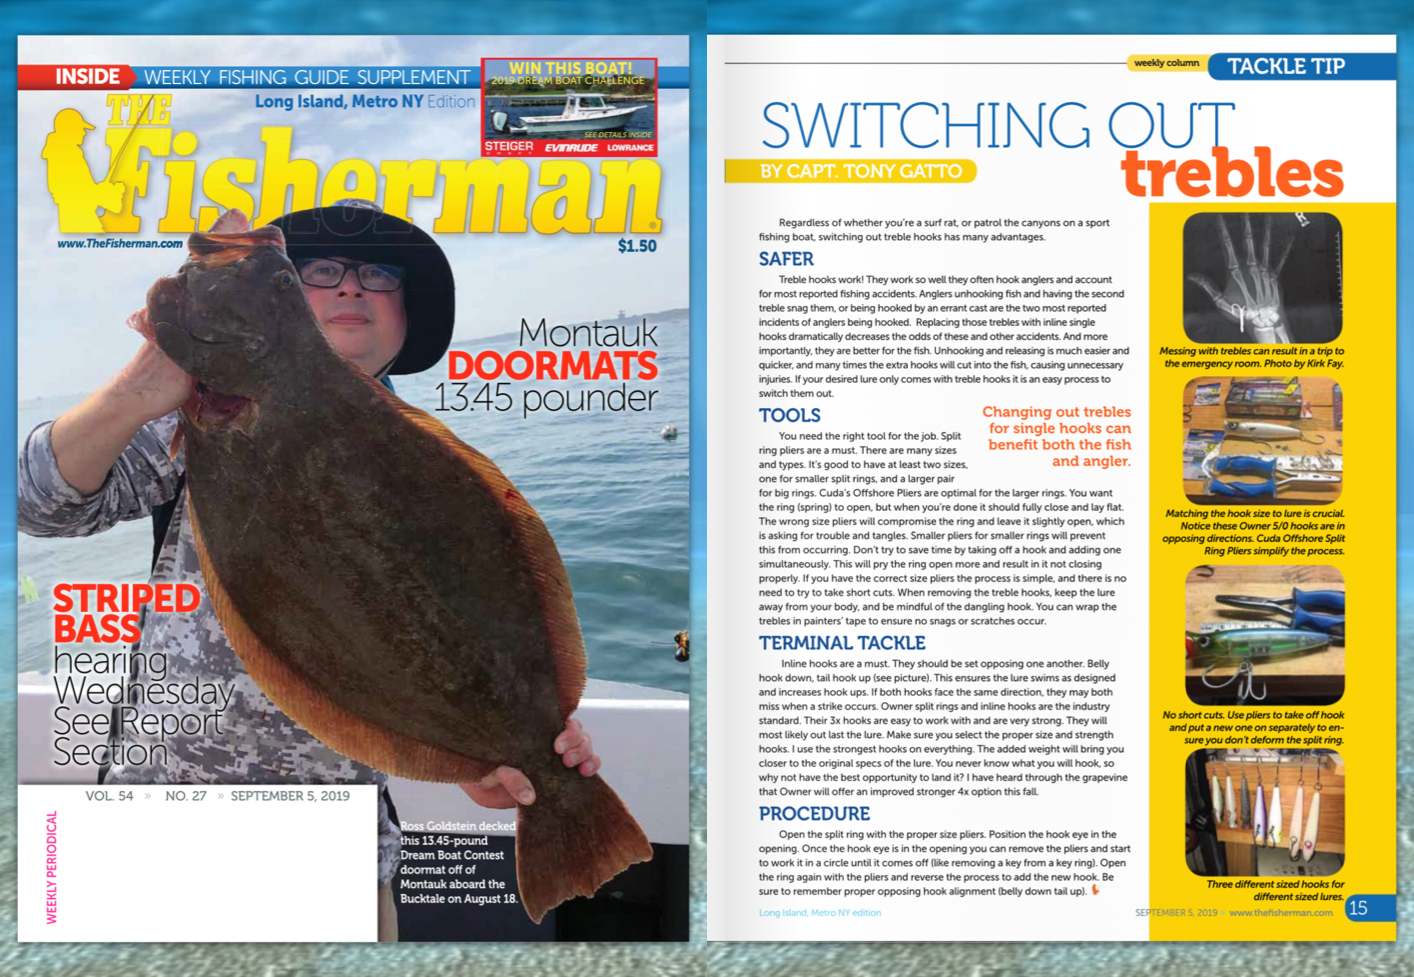 Switching Out Trebles- Featured in Fisherman September 5, 2019